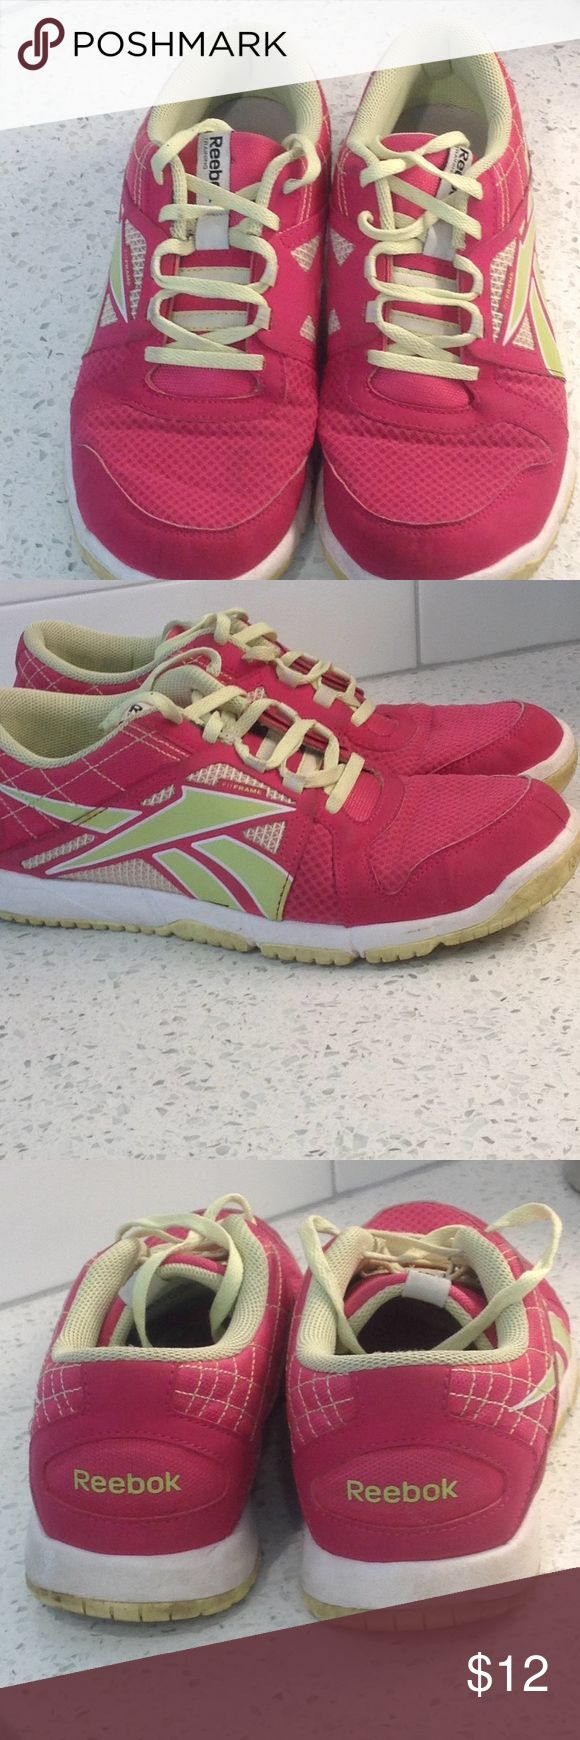 Reebok shoes Some wear as shown in pictures and reflected in price. Plenty of wear left. Reebok Shoes Athletic Shoes